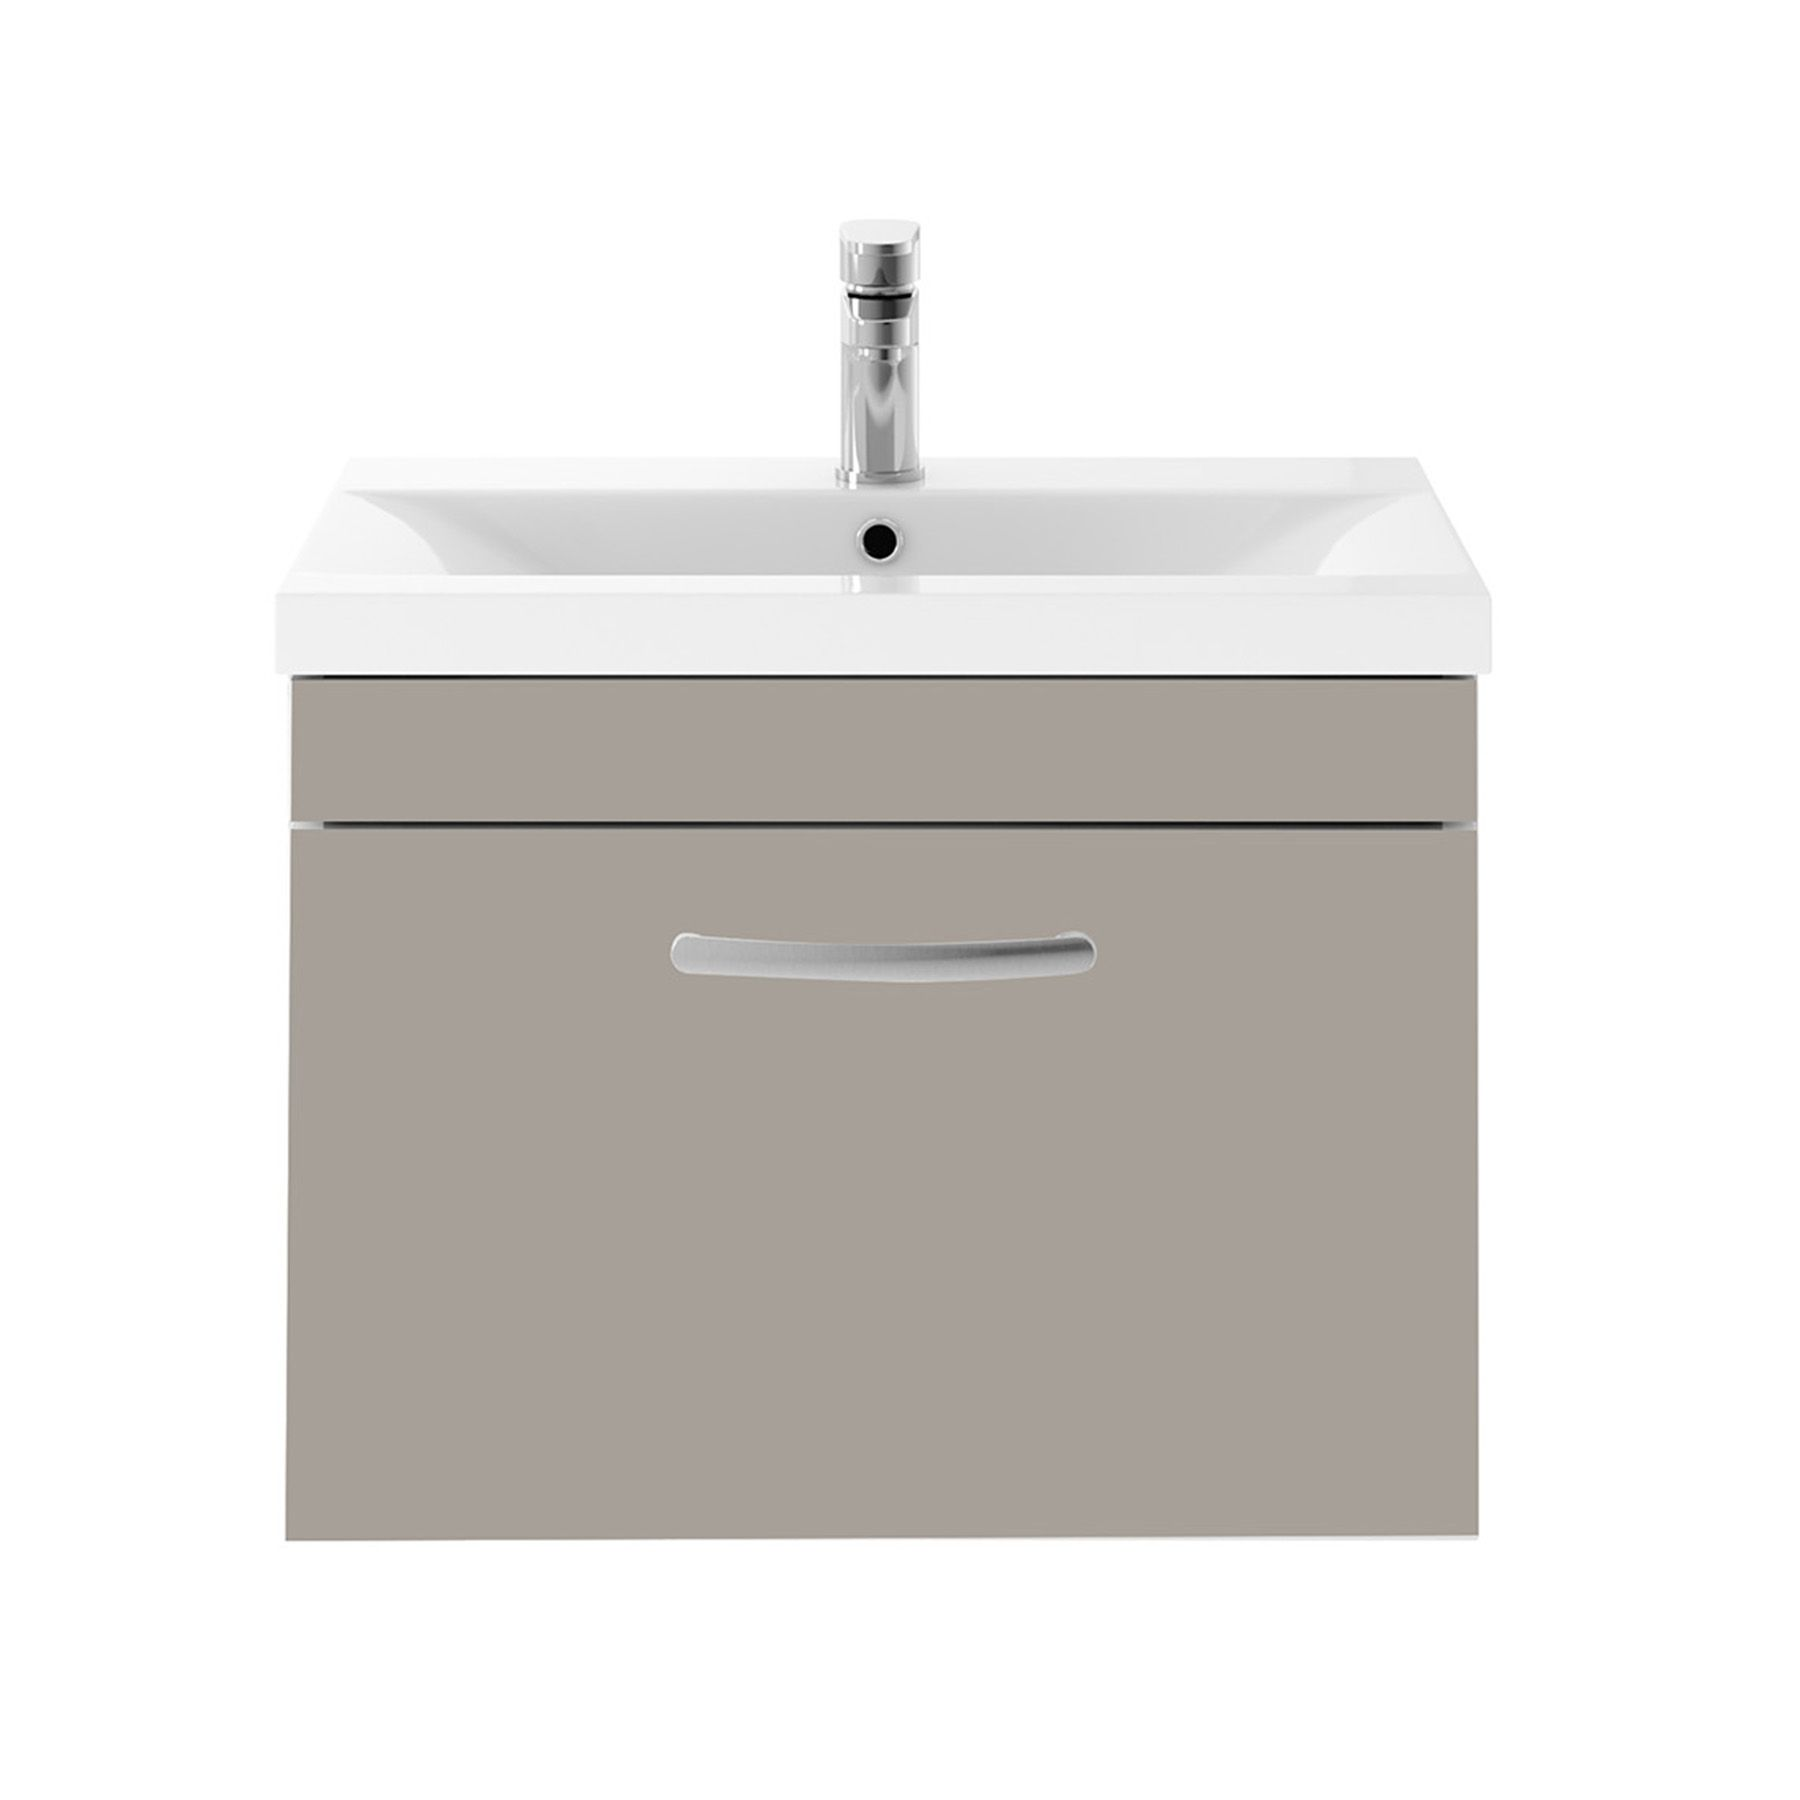 Premier Athena 600mm Stone Grey Wall Hung Vanity Unit With Minimalist Basin Cabinet In 2020 Wall Hung Vanity Grey Walls Vanity Units